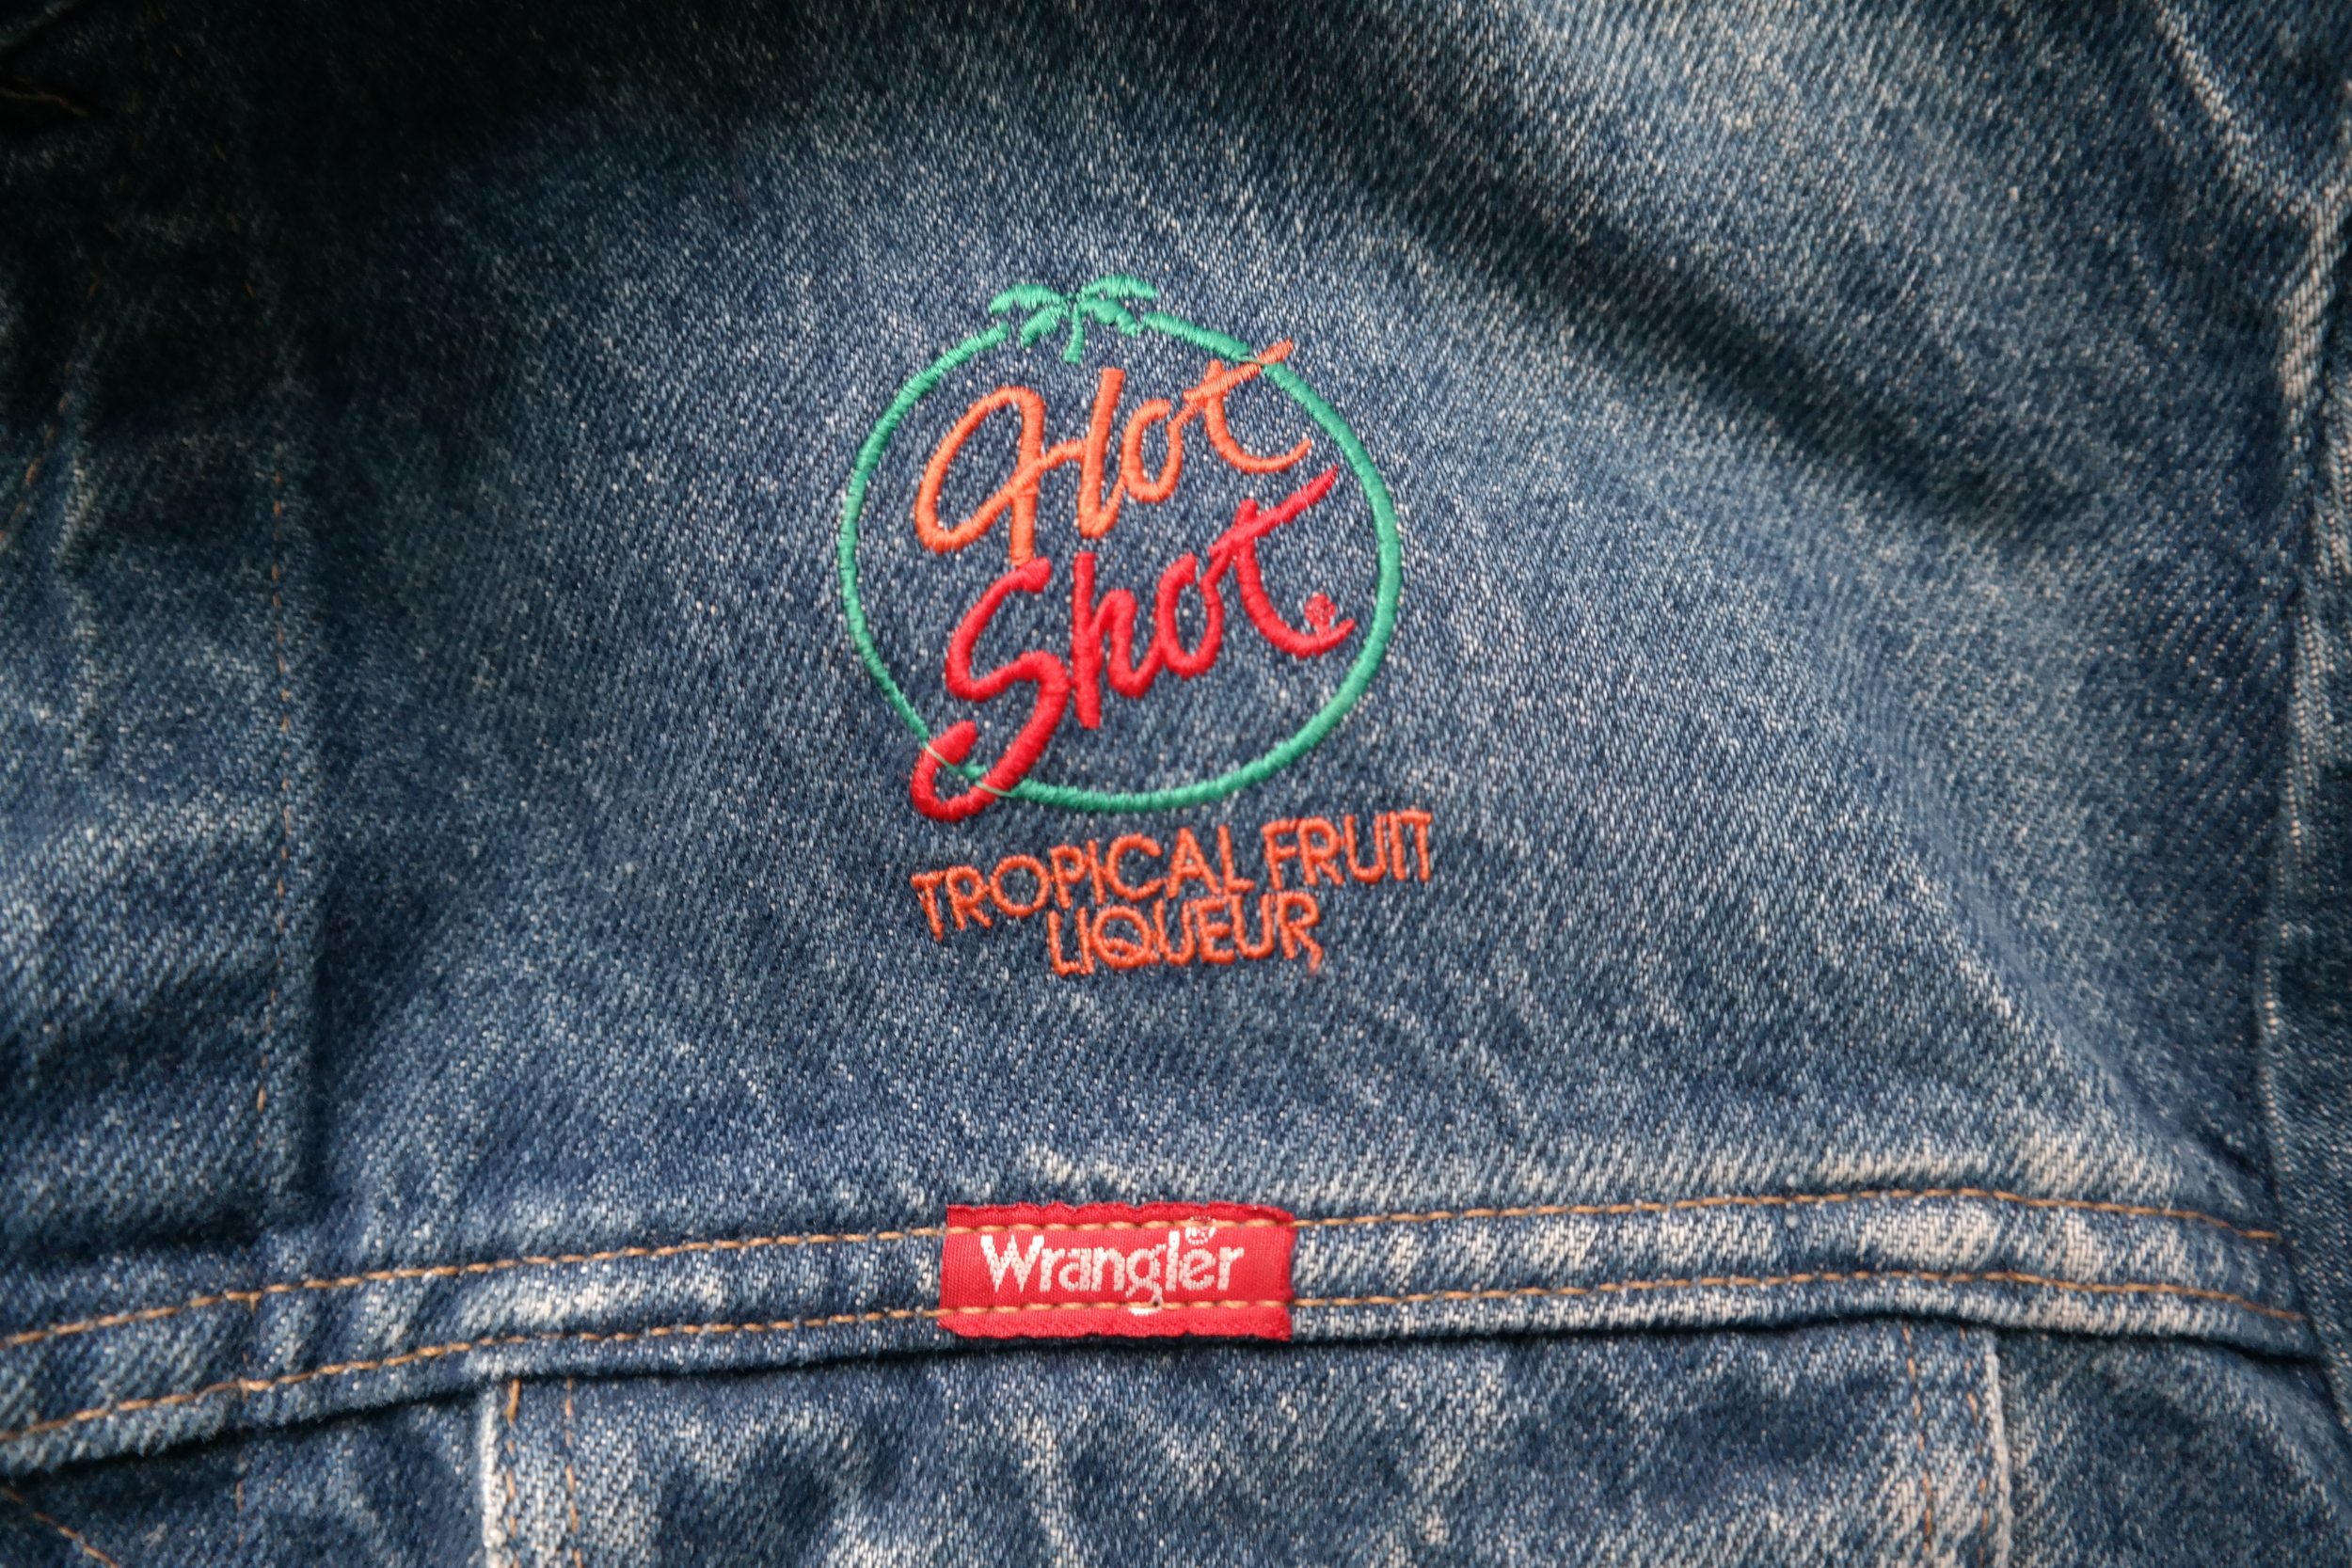 Obsessed with this promotional embroidery find